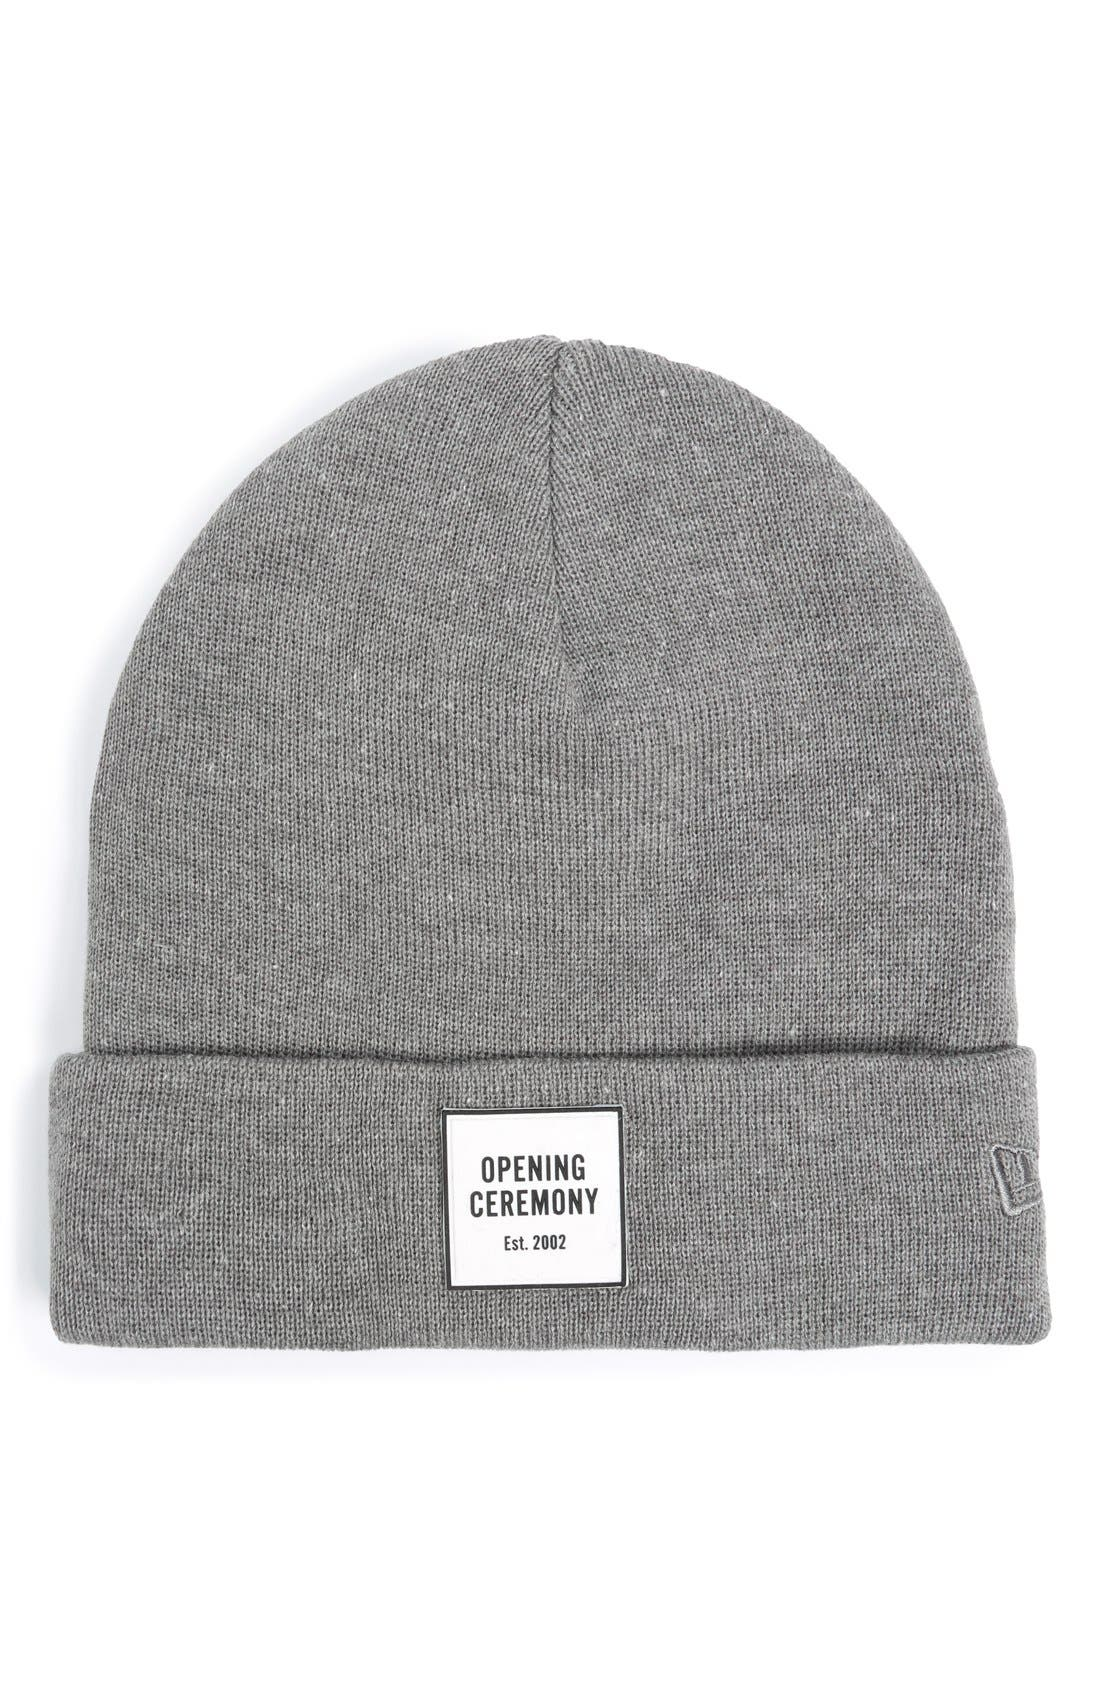 Alternate Image 1 Selected - Opening Ceremony 'Logo' Knit Beanie